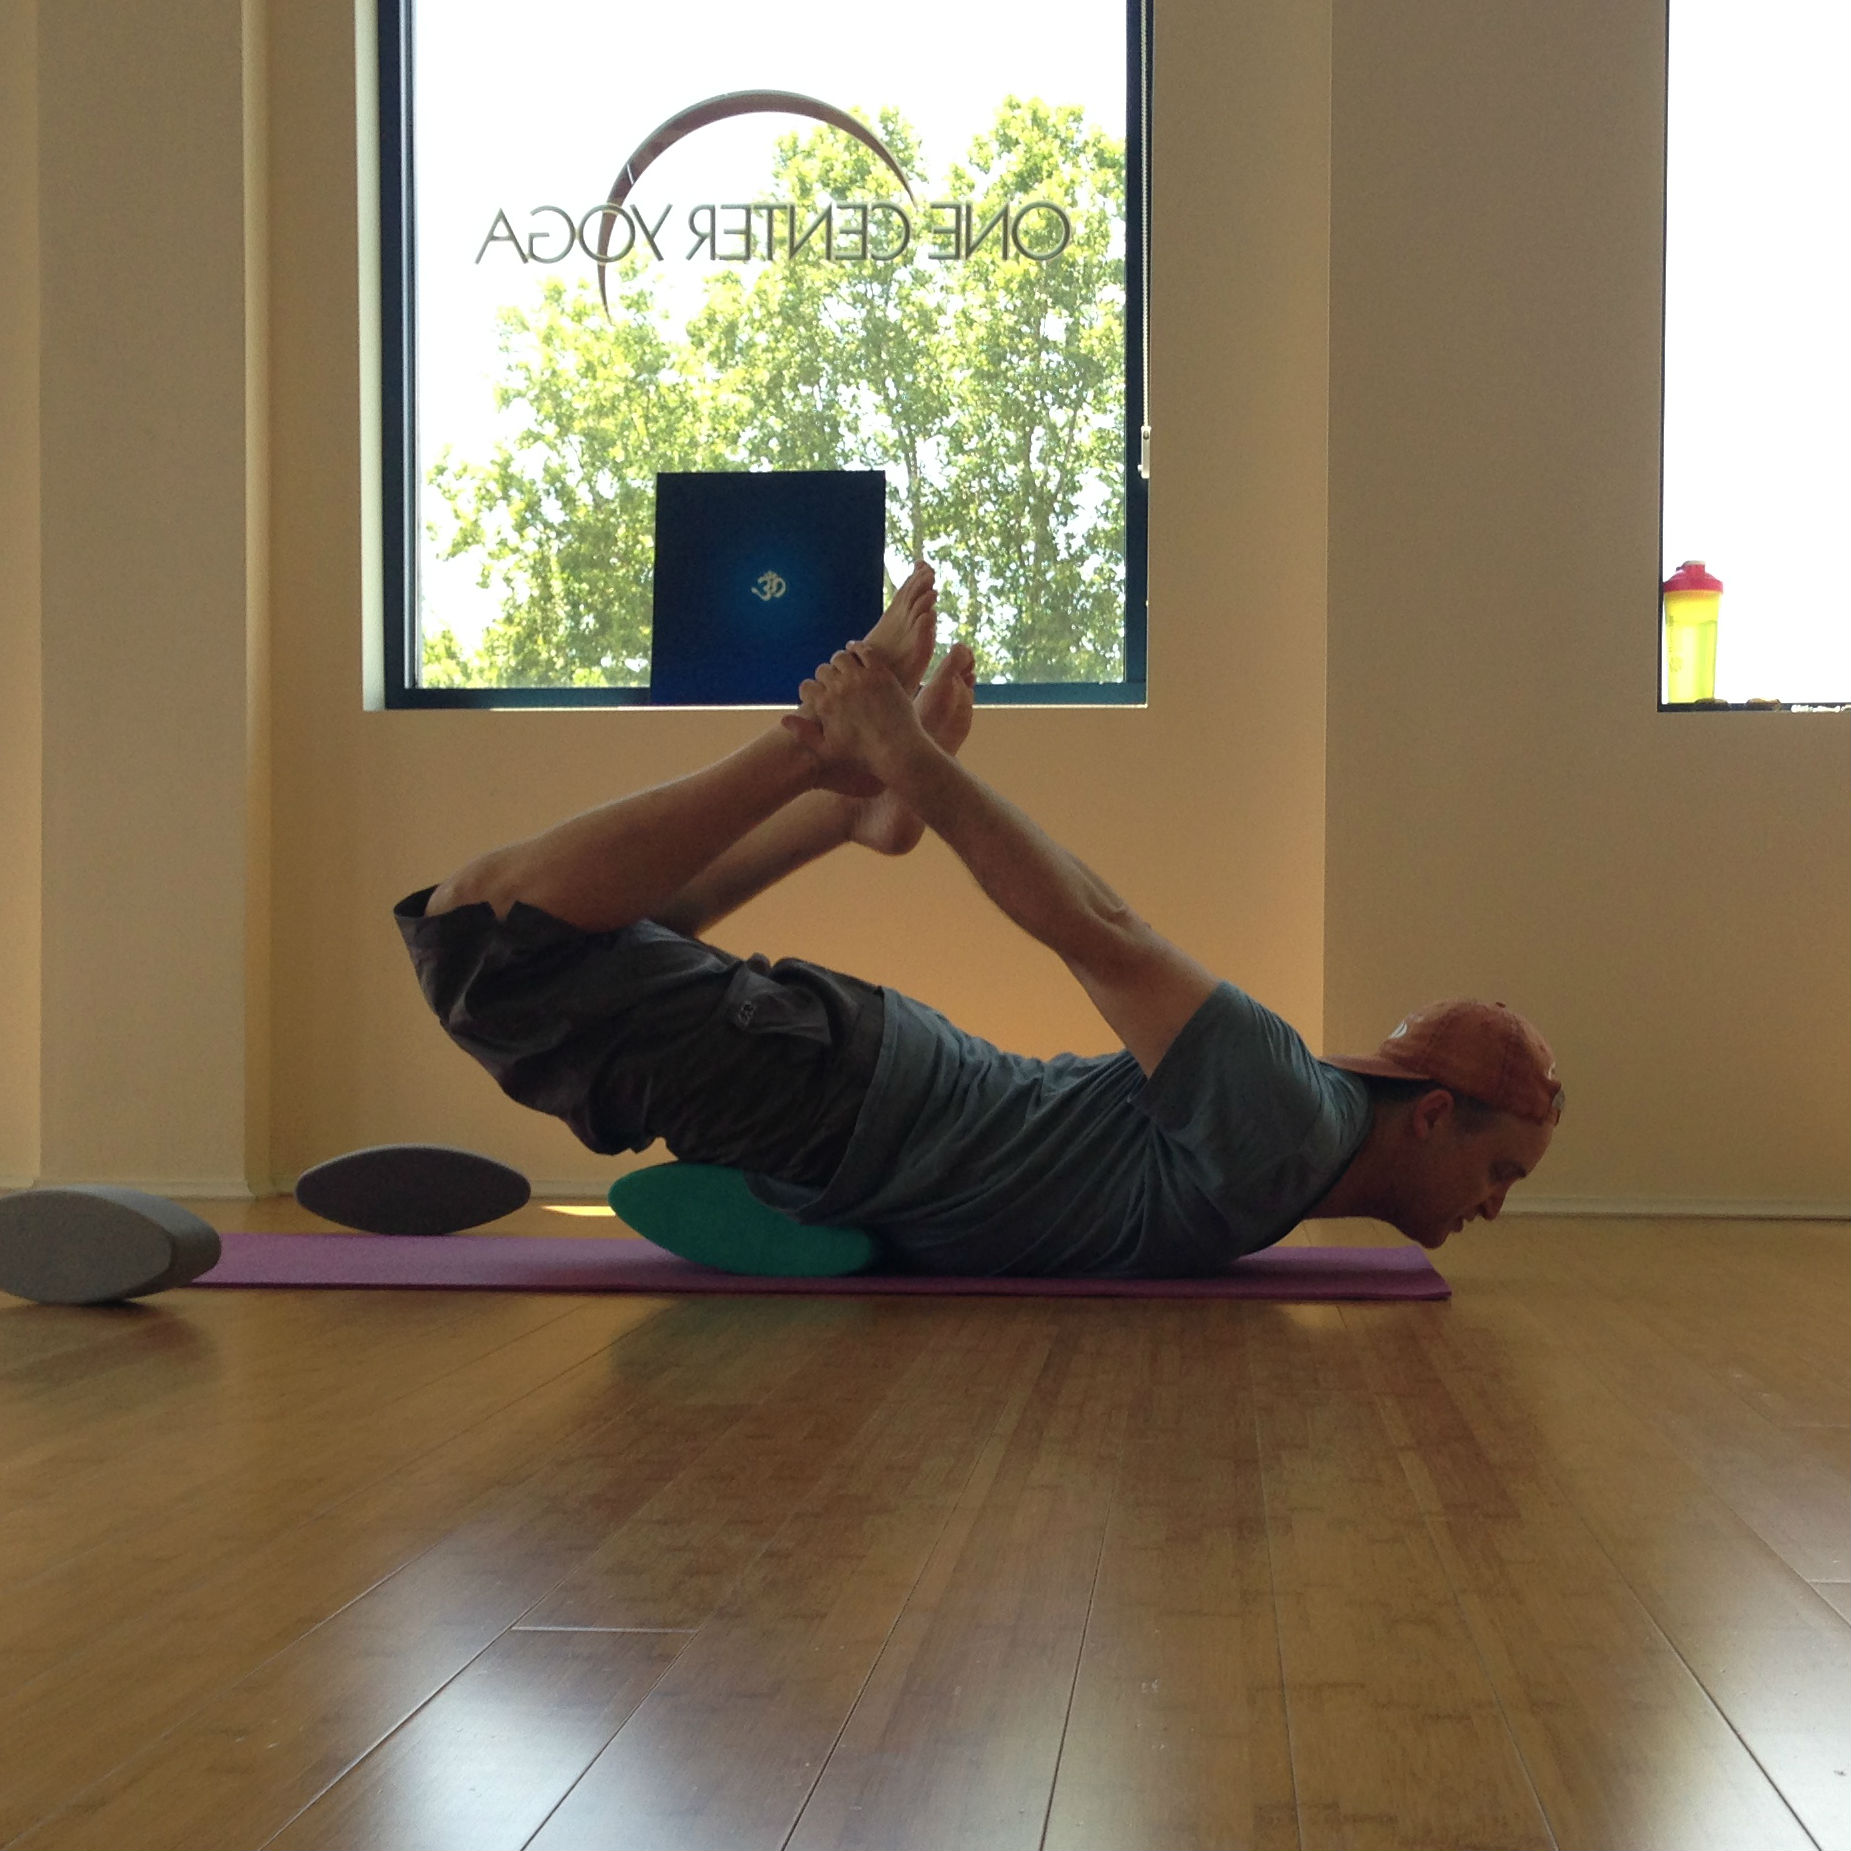 Tips for Bow Pose using ergonomic yoga blocks by Three Minute Egg